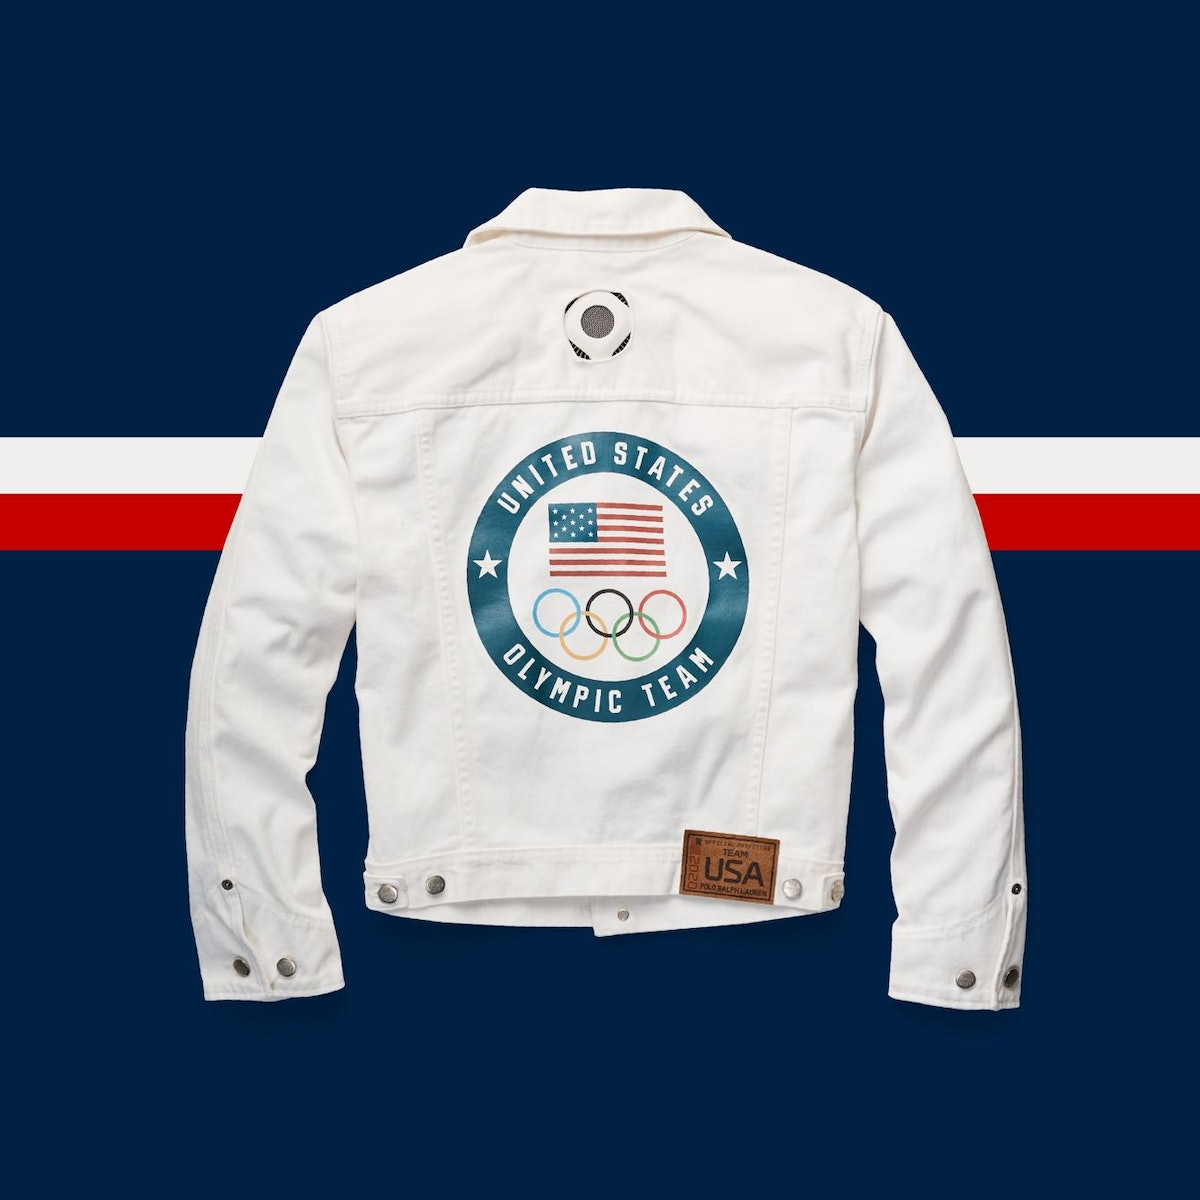 A flat lay image of the white jackets designed for the Team USA flag bearers at the 2021 Olympics, w...